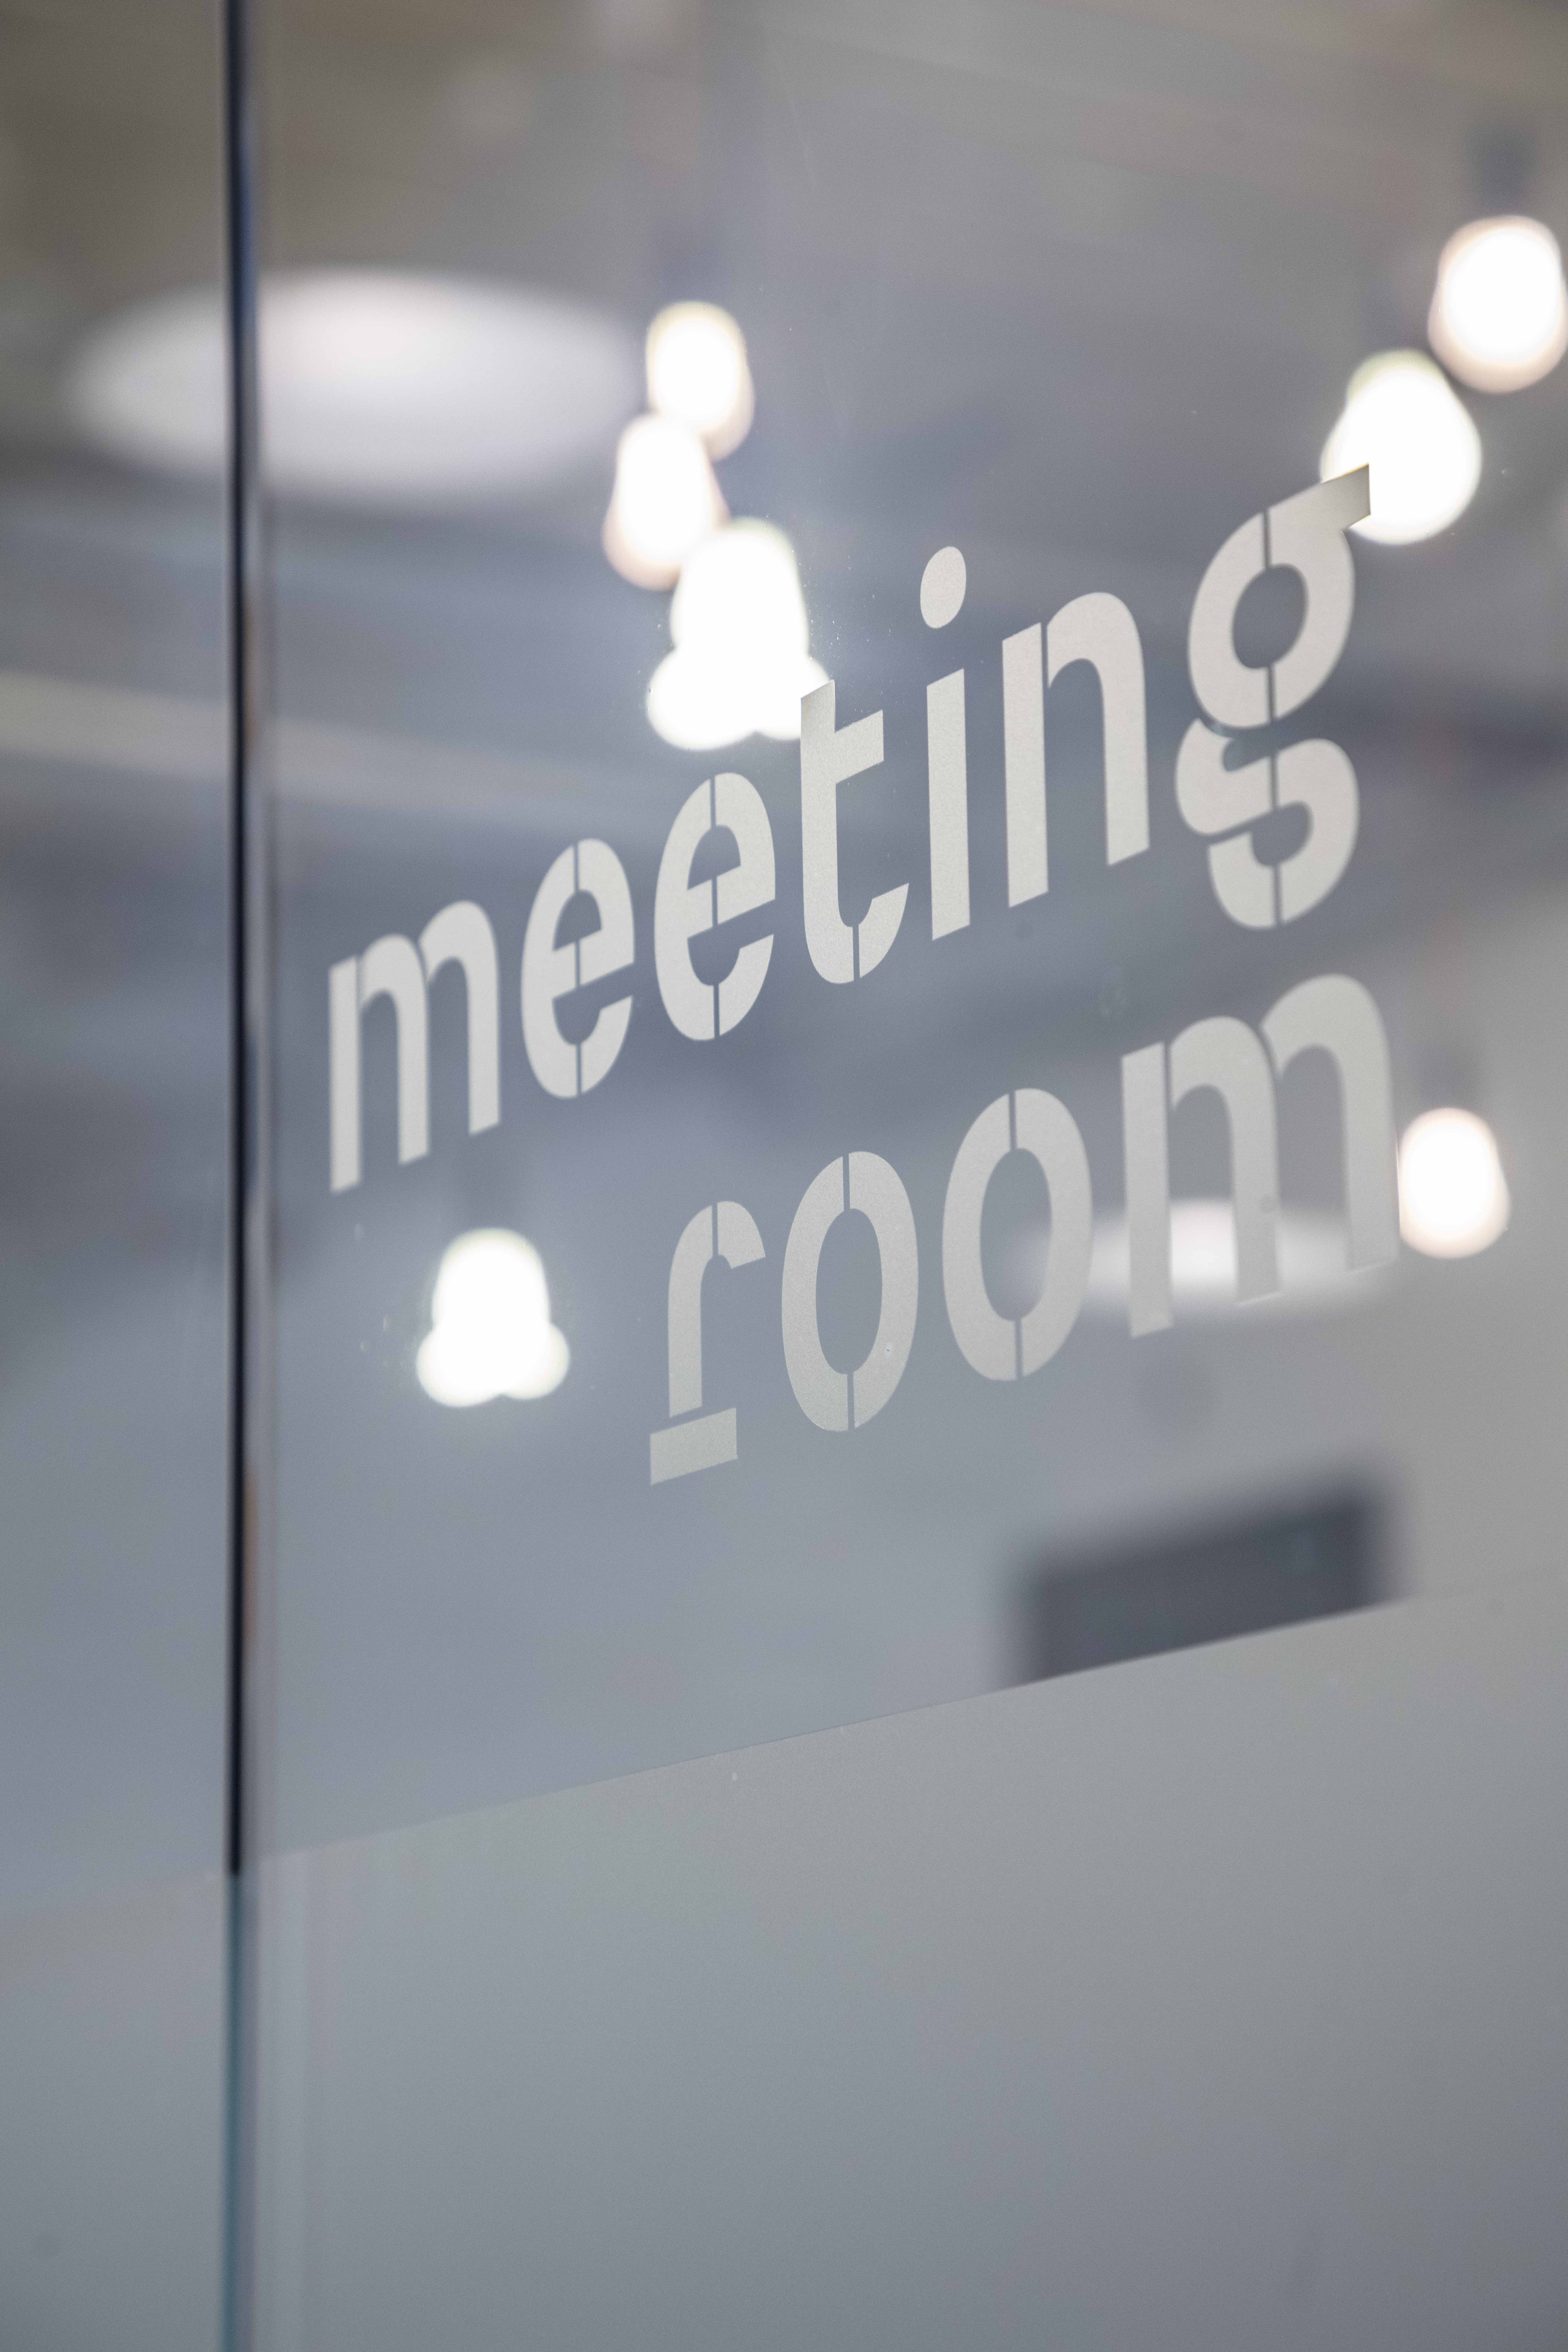 Meeting room vinyl text - Brixton